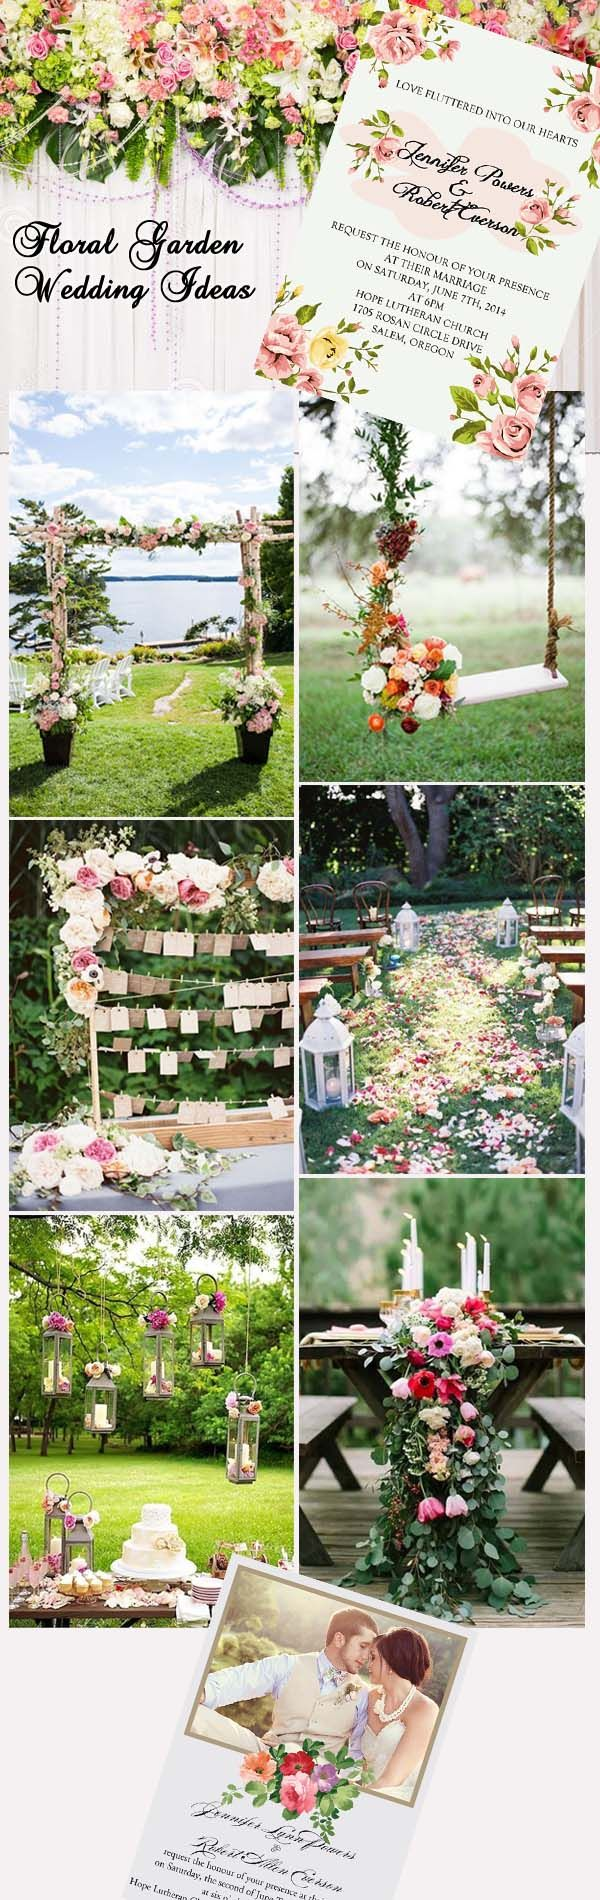 25 Best Ideas About Garden Wedding Themes On Pinterest Blush